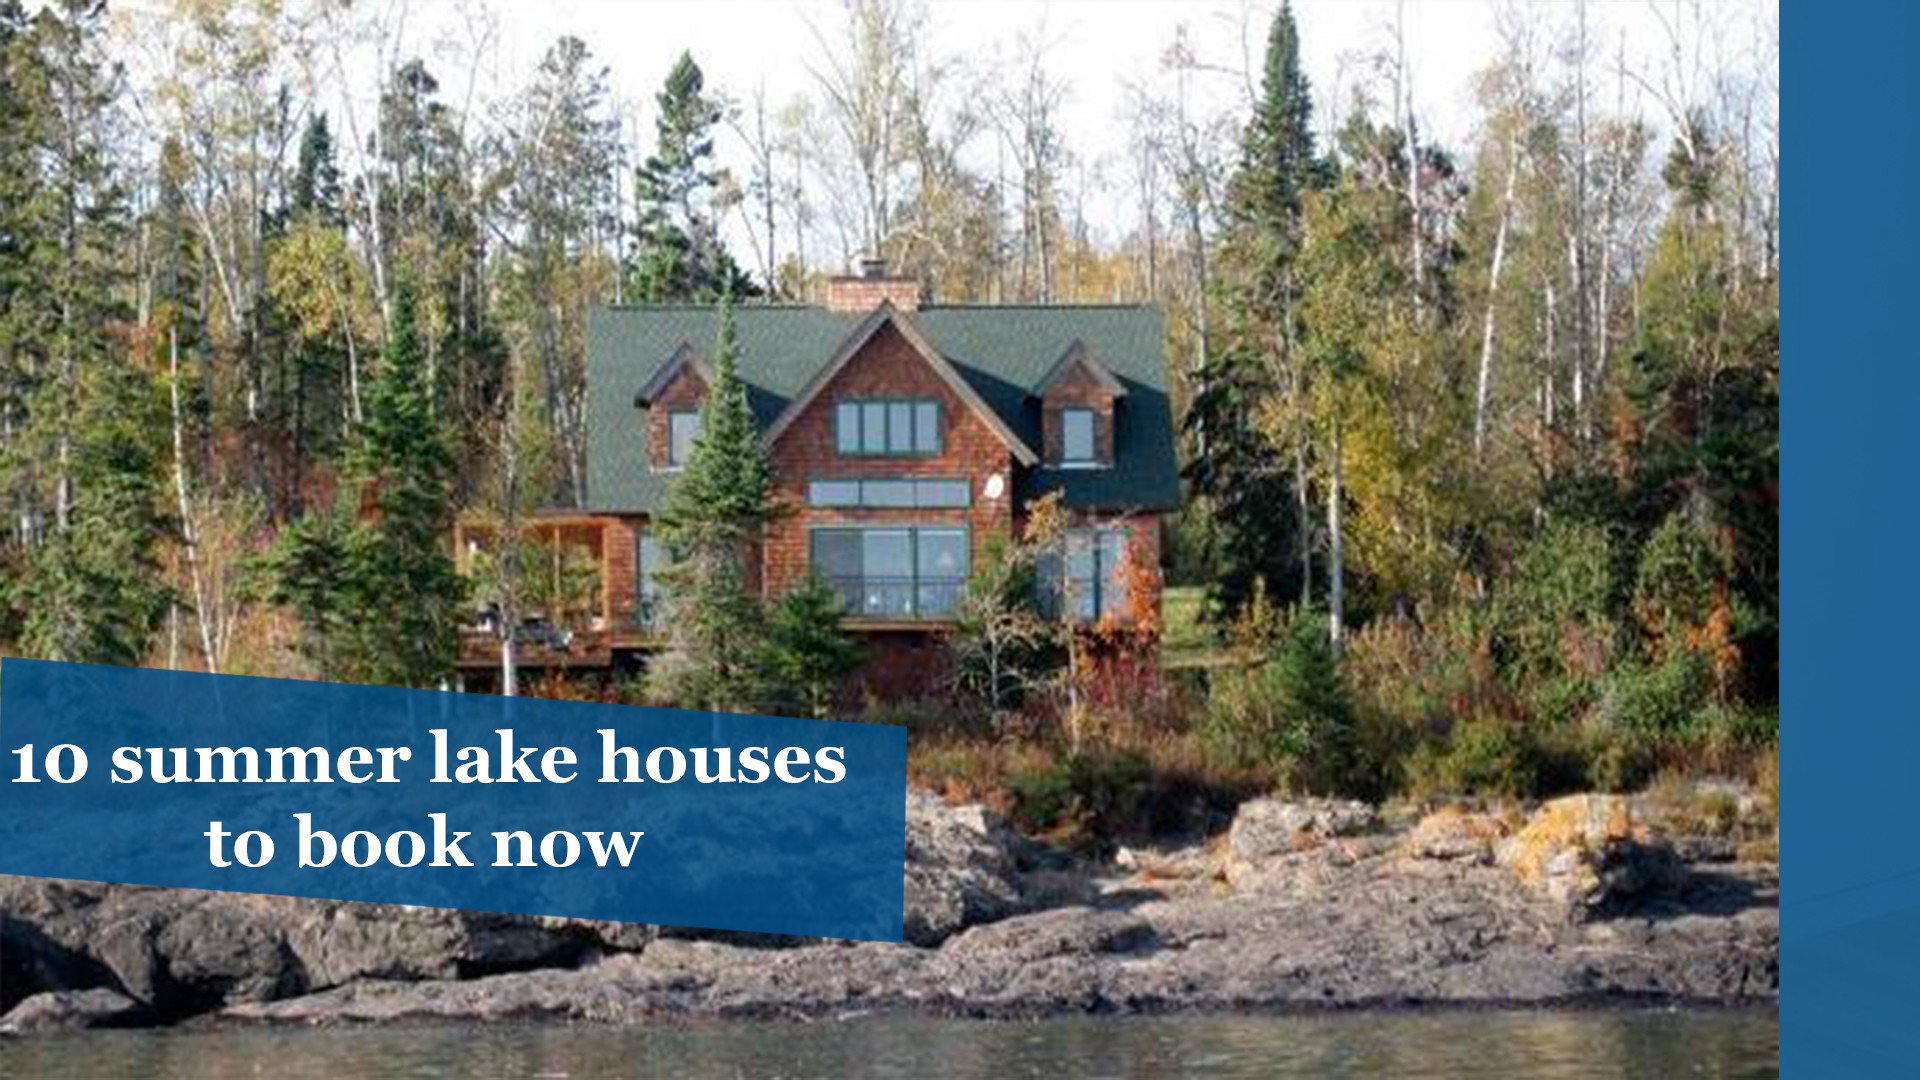 10 dreamy summer lake houses to book now chicago tribune for How much does a lake house cost